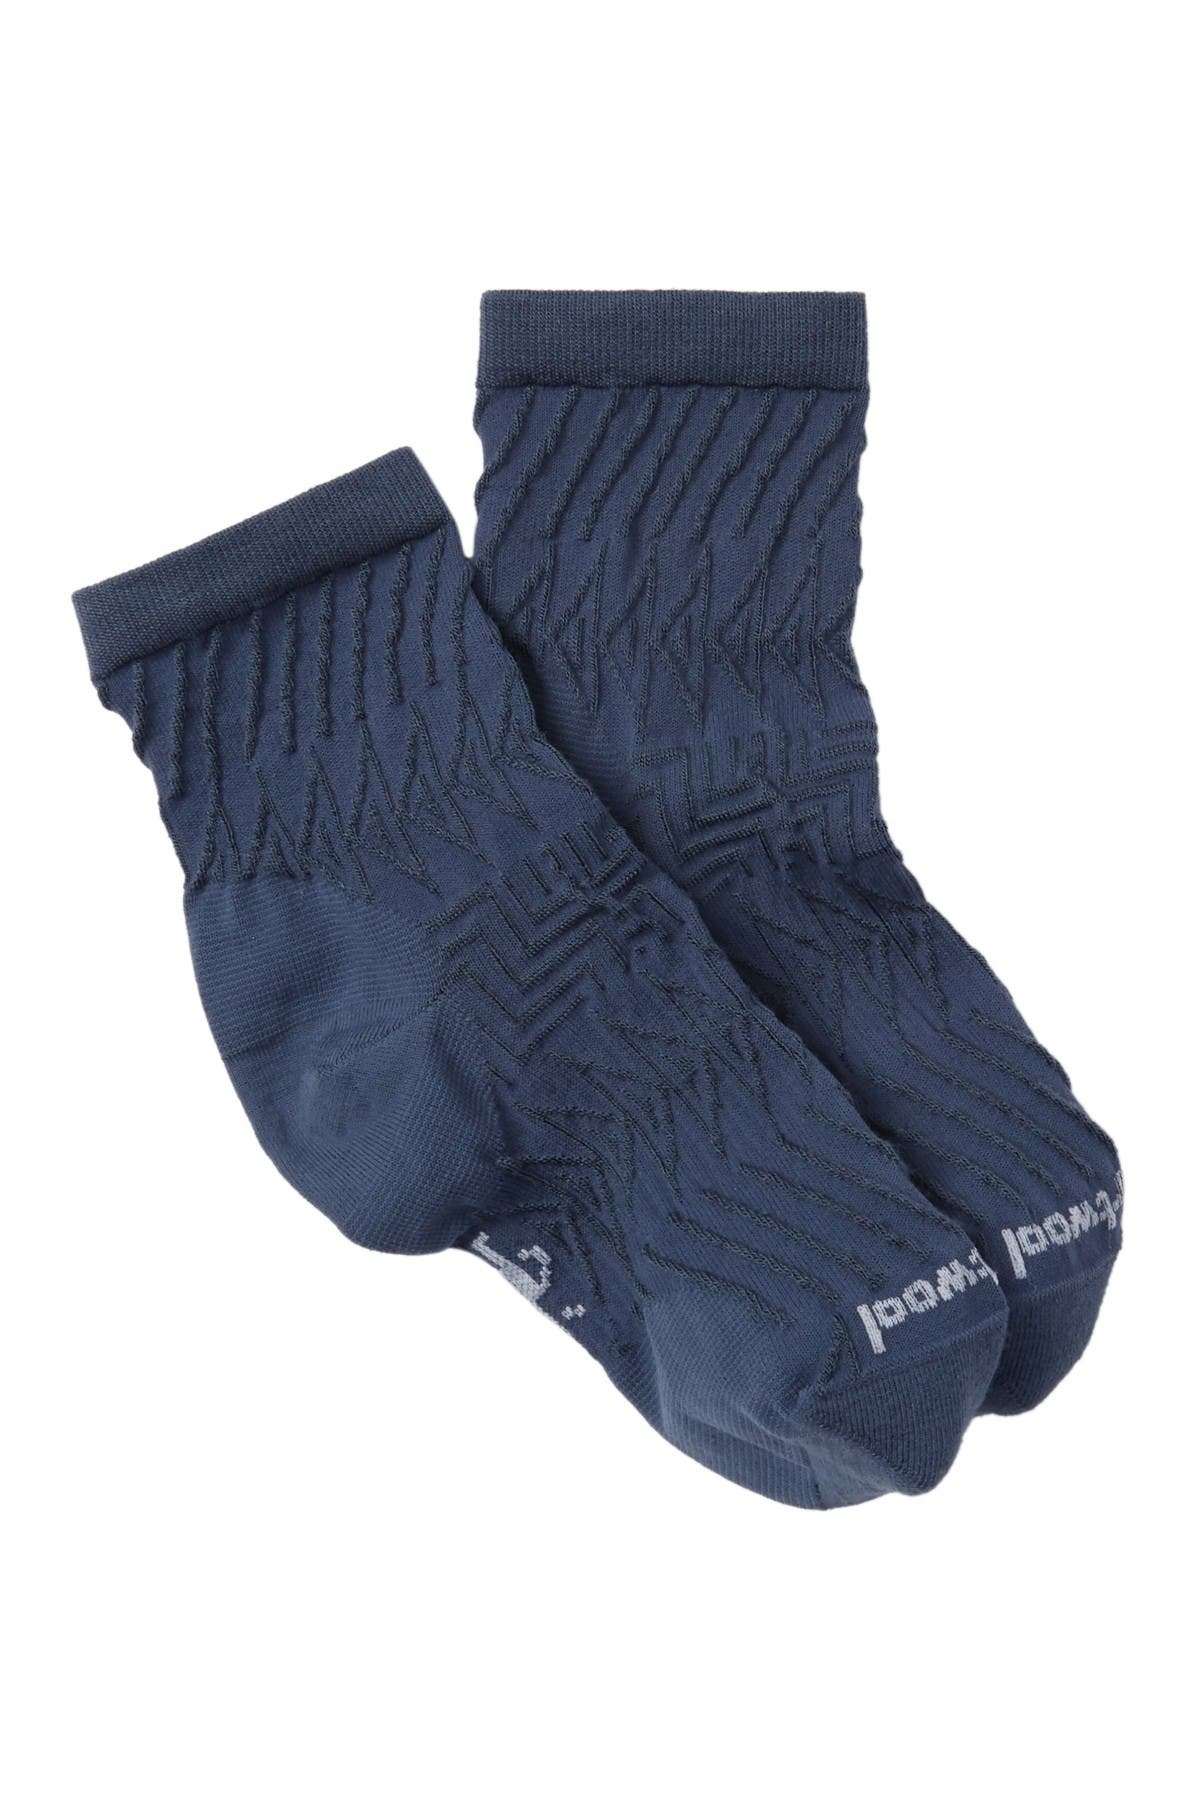 Image of SmartWool Triangle Textured Mid Crew Socks